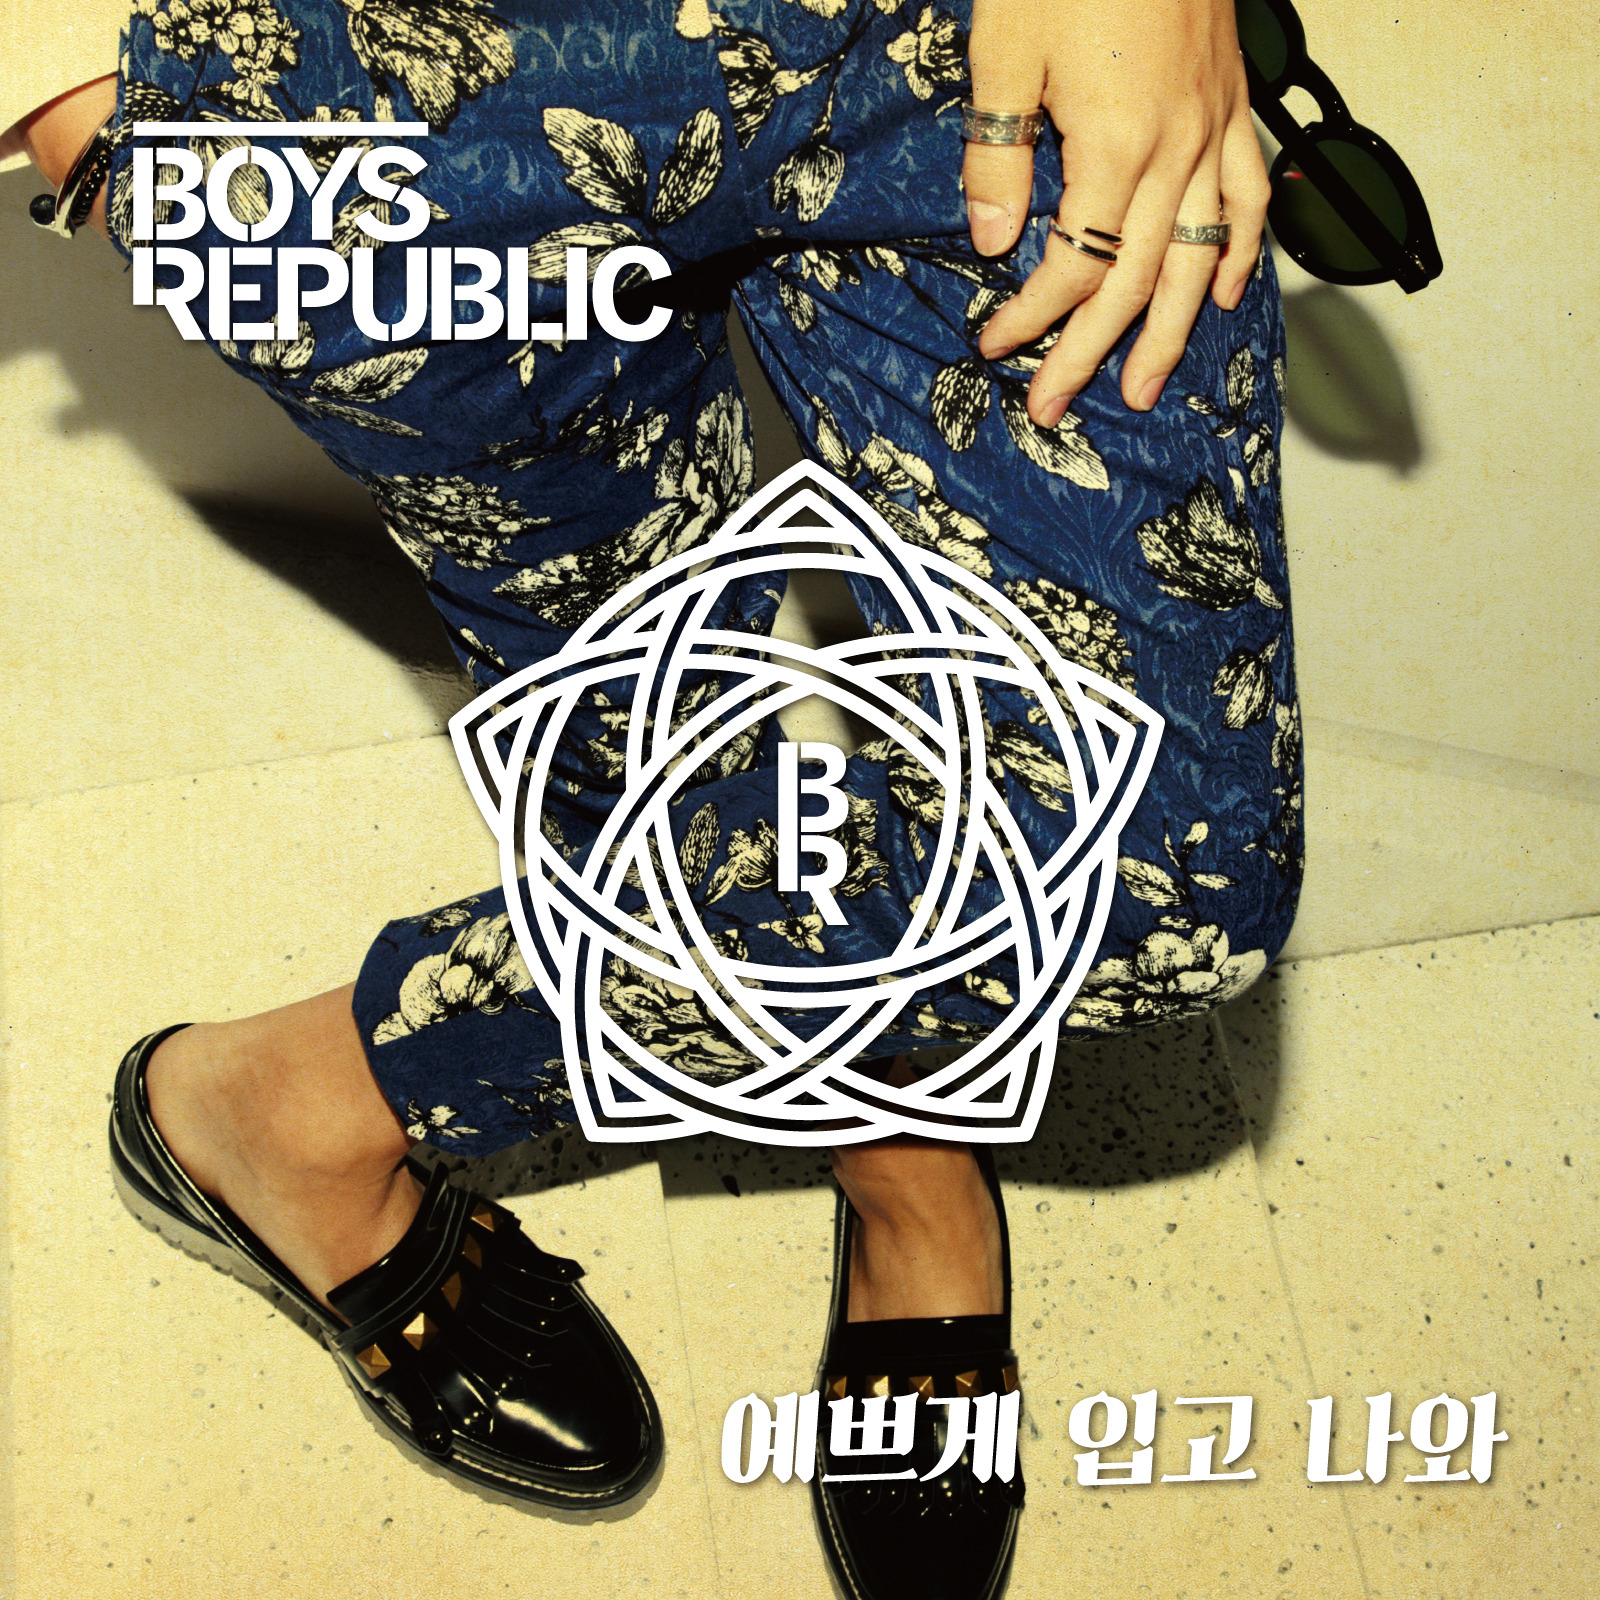 Dress up lyrics boy republic - Boys Republic Dress Up Color Coded Lyrics